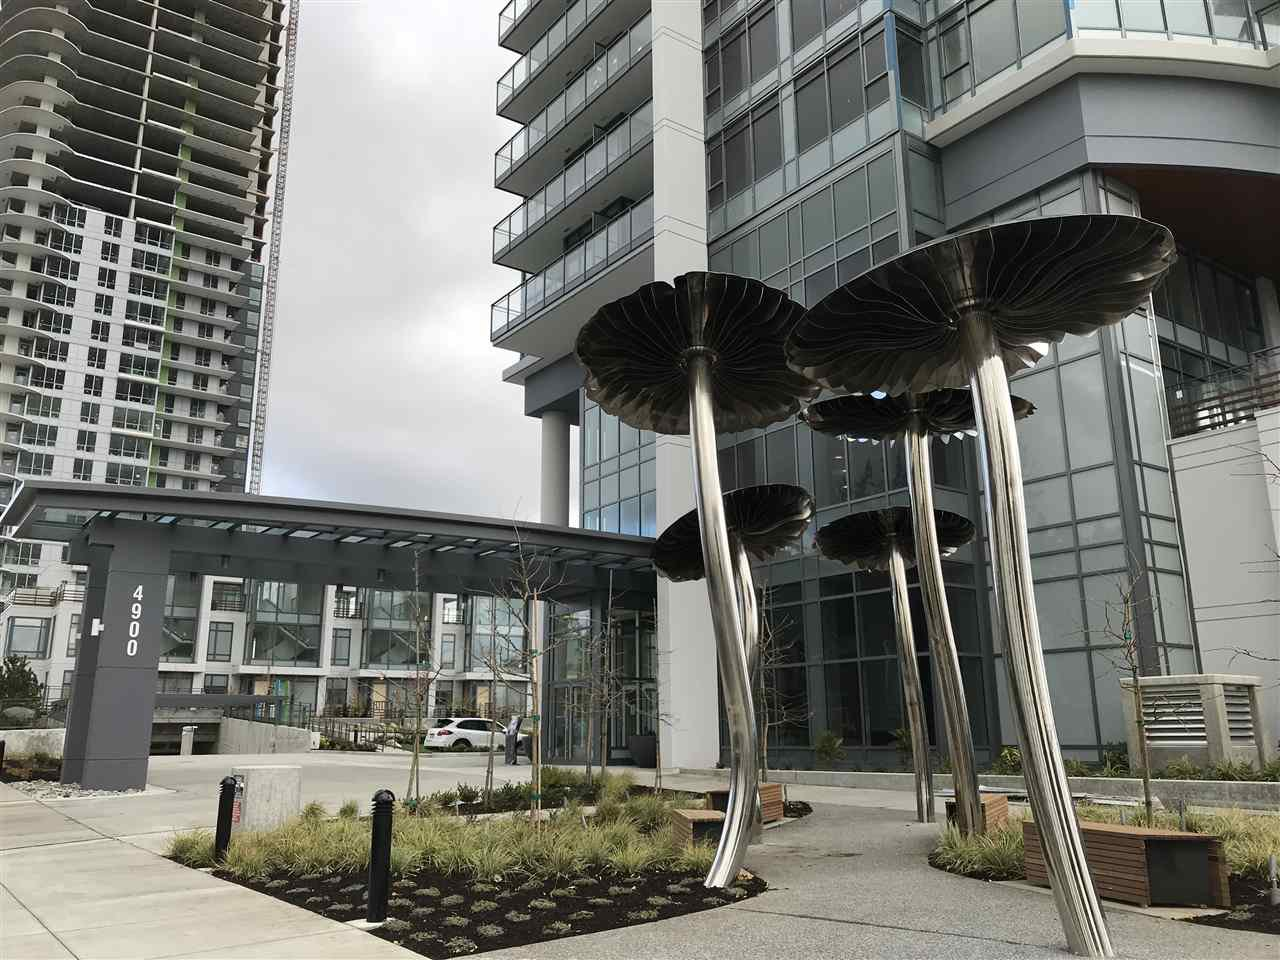 """Main Photo: 604 4900 LENNOX Lane in Burnaby: Metrotown Condo for sale in """"PARK METROTOWN"""" (Burnaby South)  : MLS®# R2222258"""